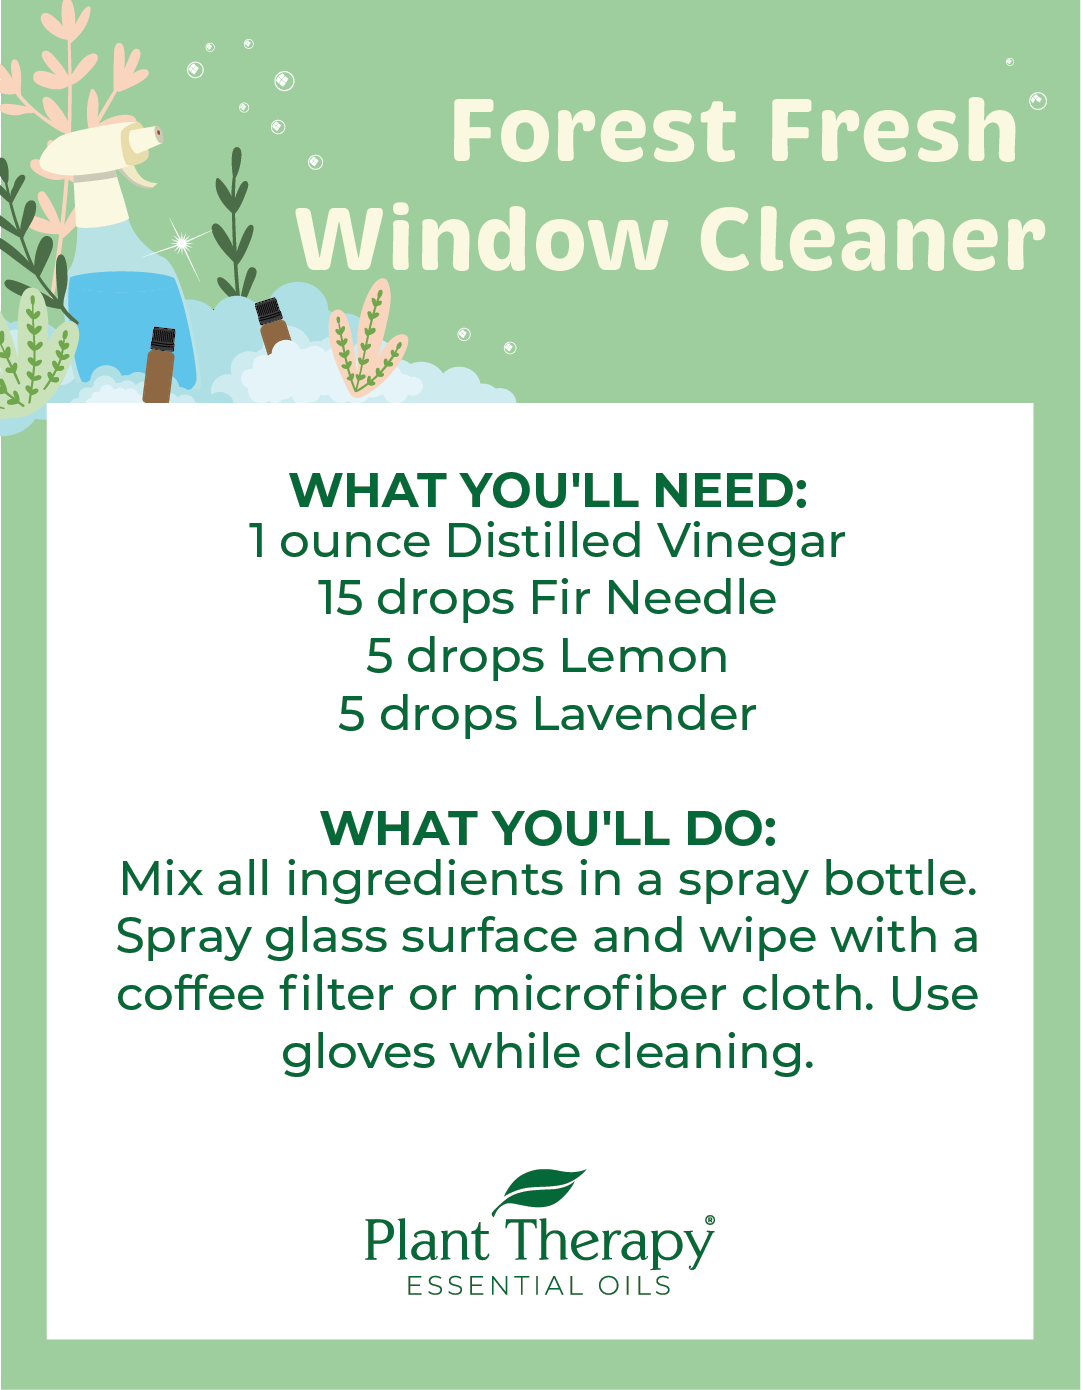 Forest_Fresh_Window_Cleaner-Pinterest-1.png